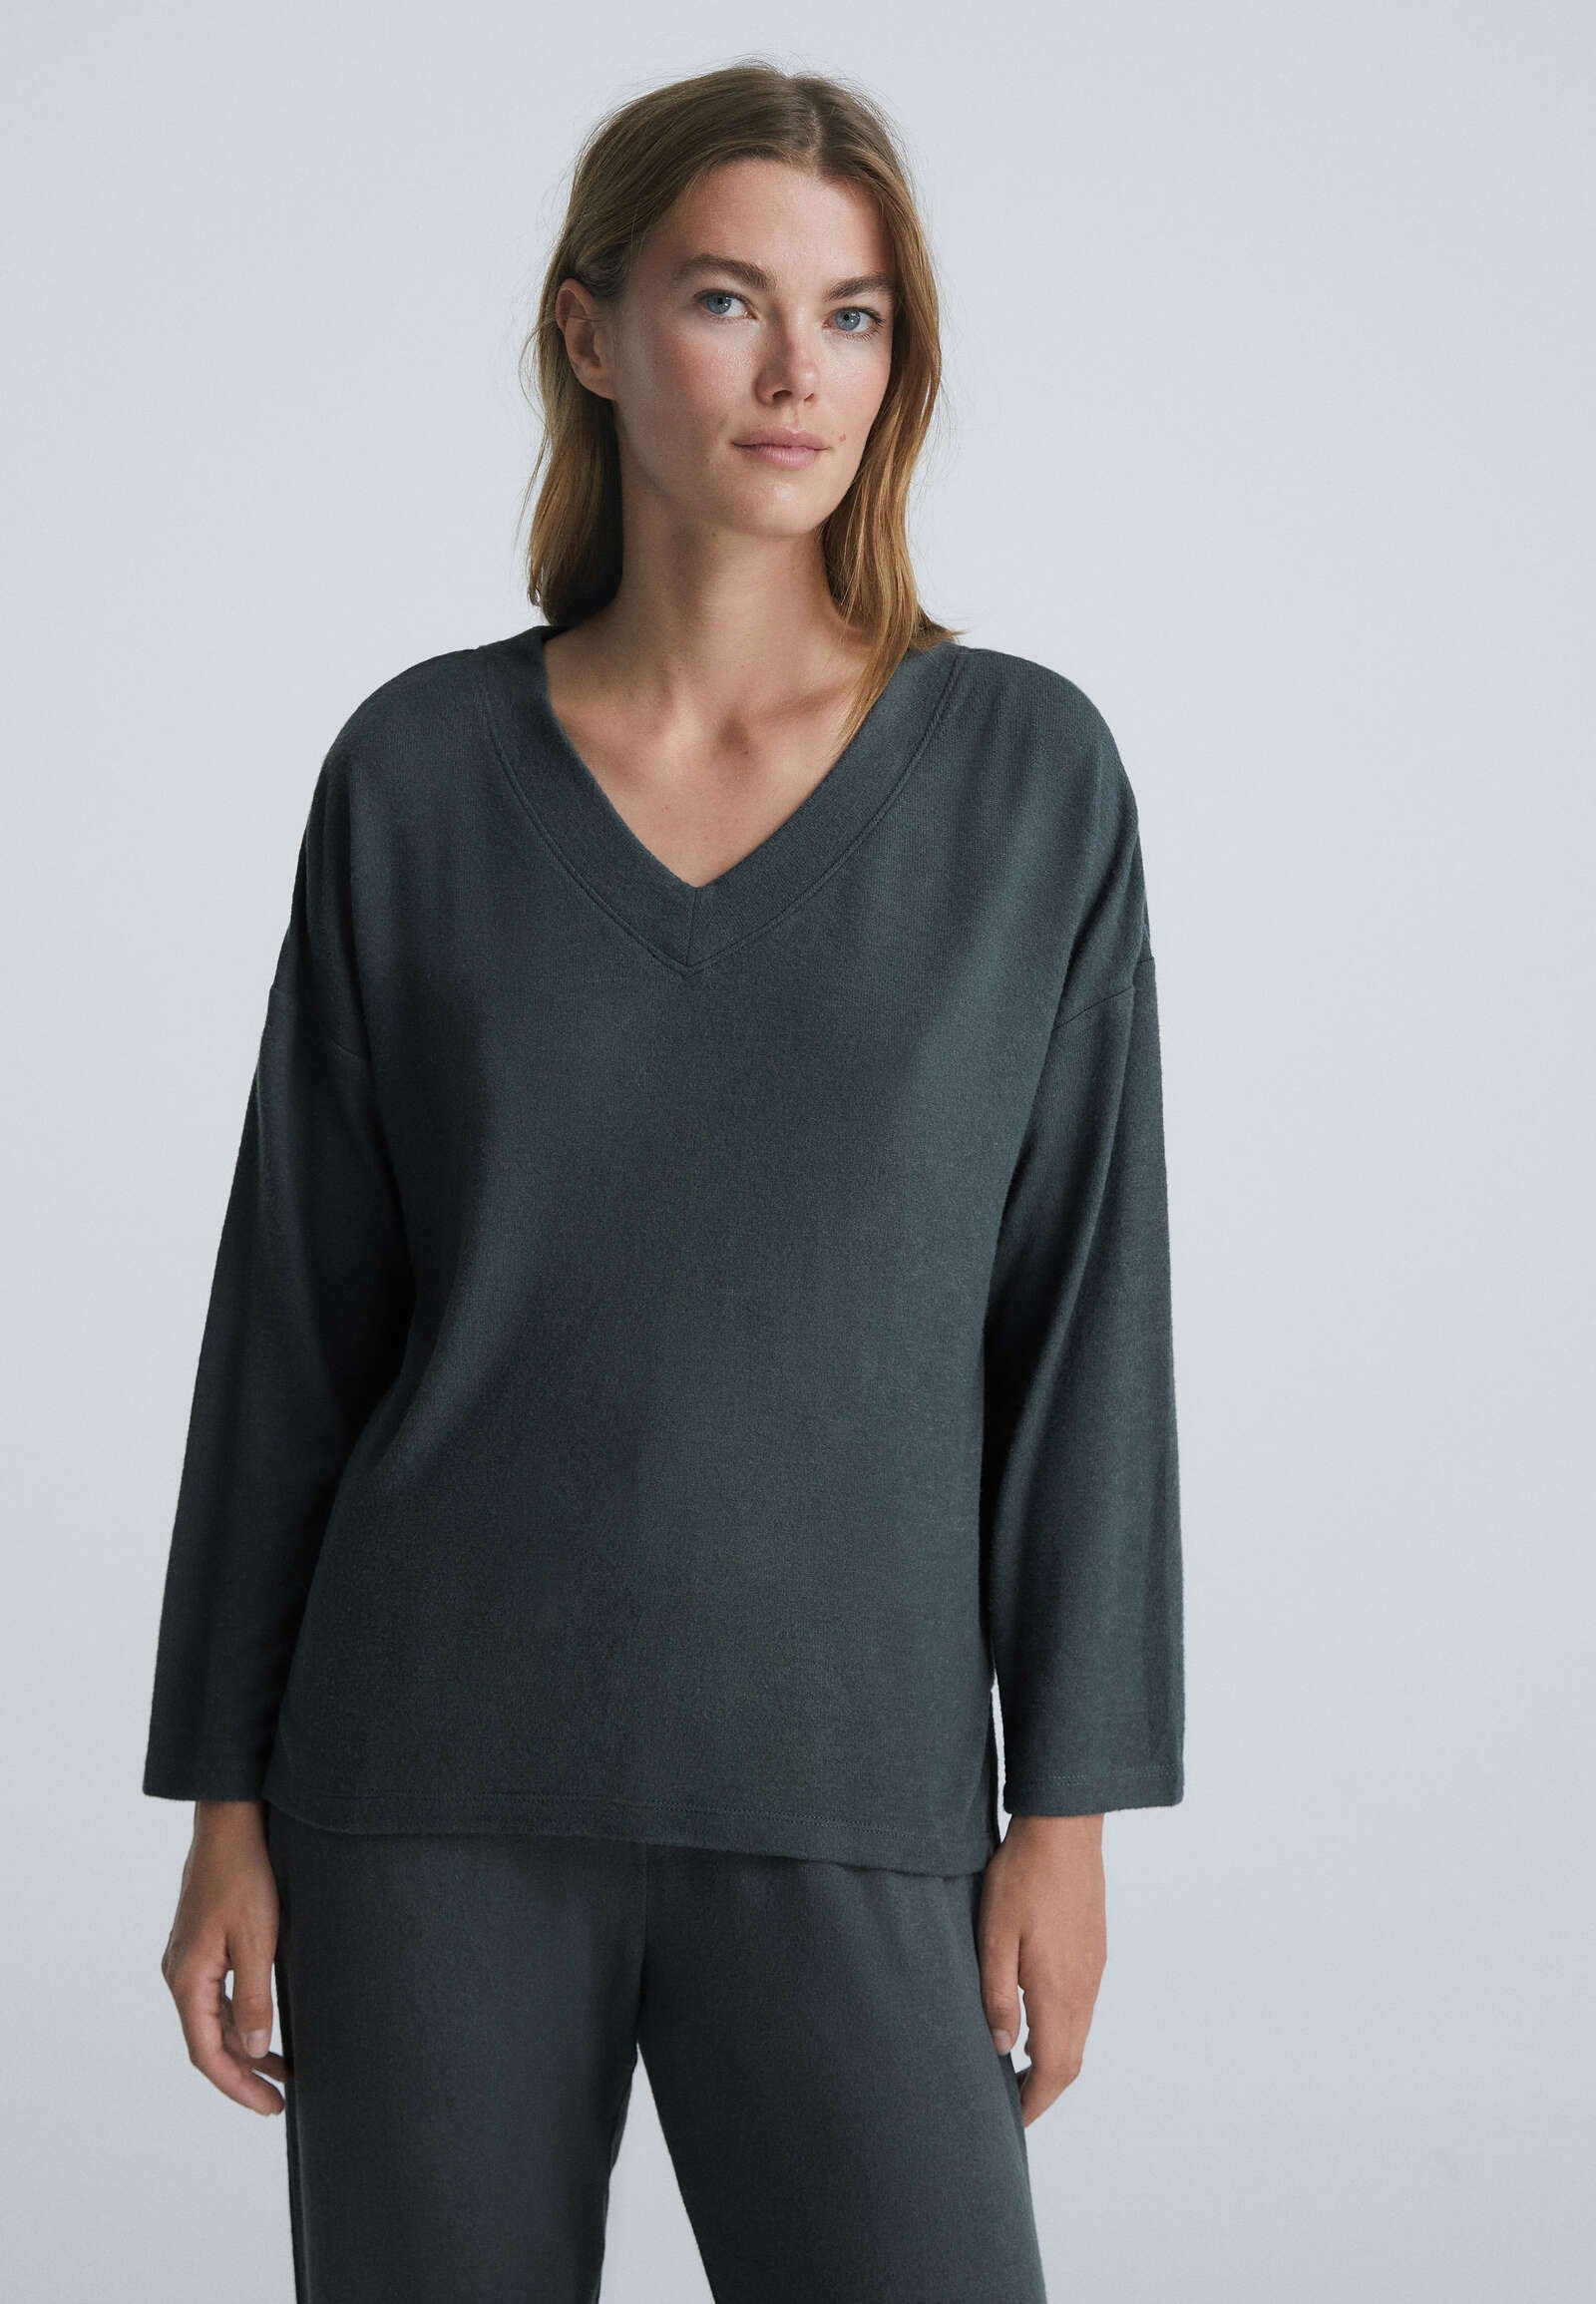 Donna SOFT TOUCH LONG-SLEEVED   - Maglia del pigiama